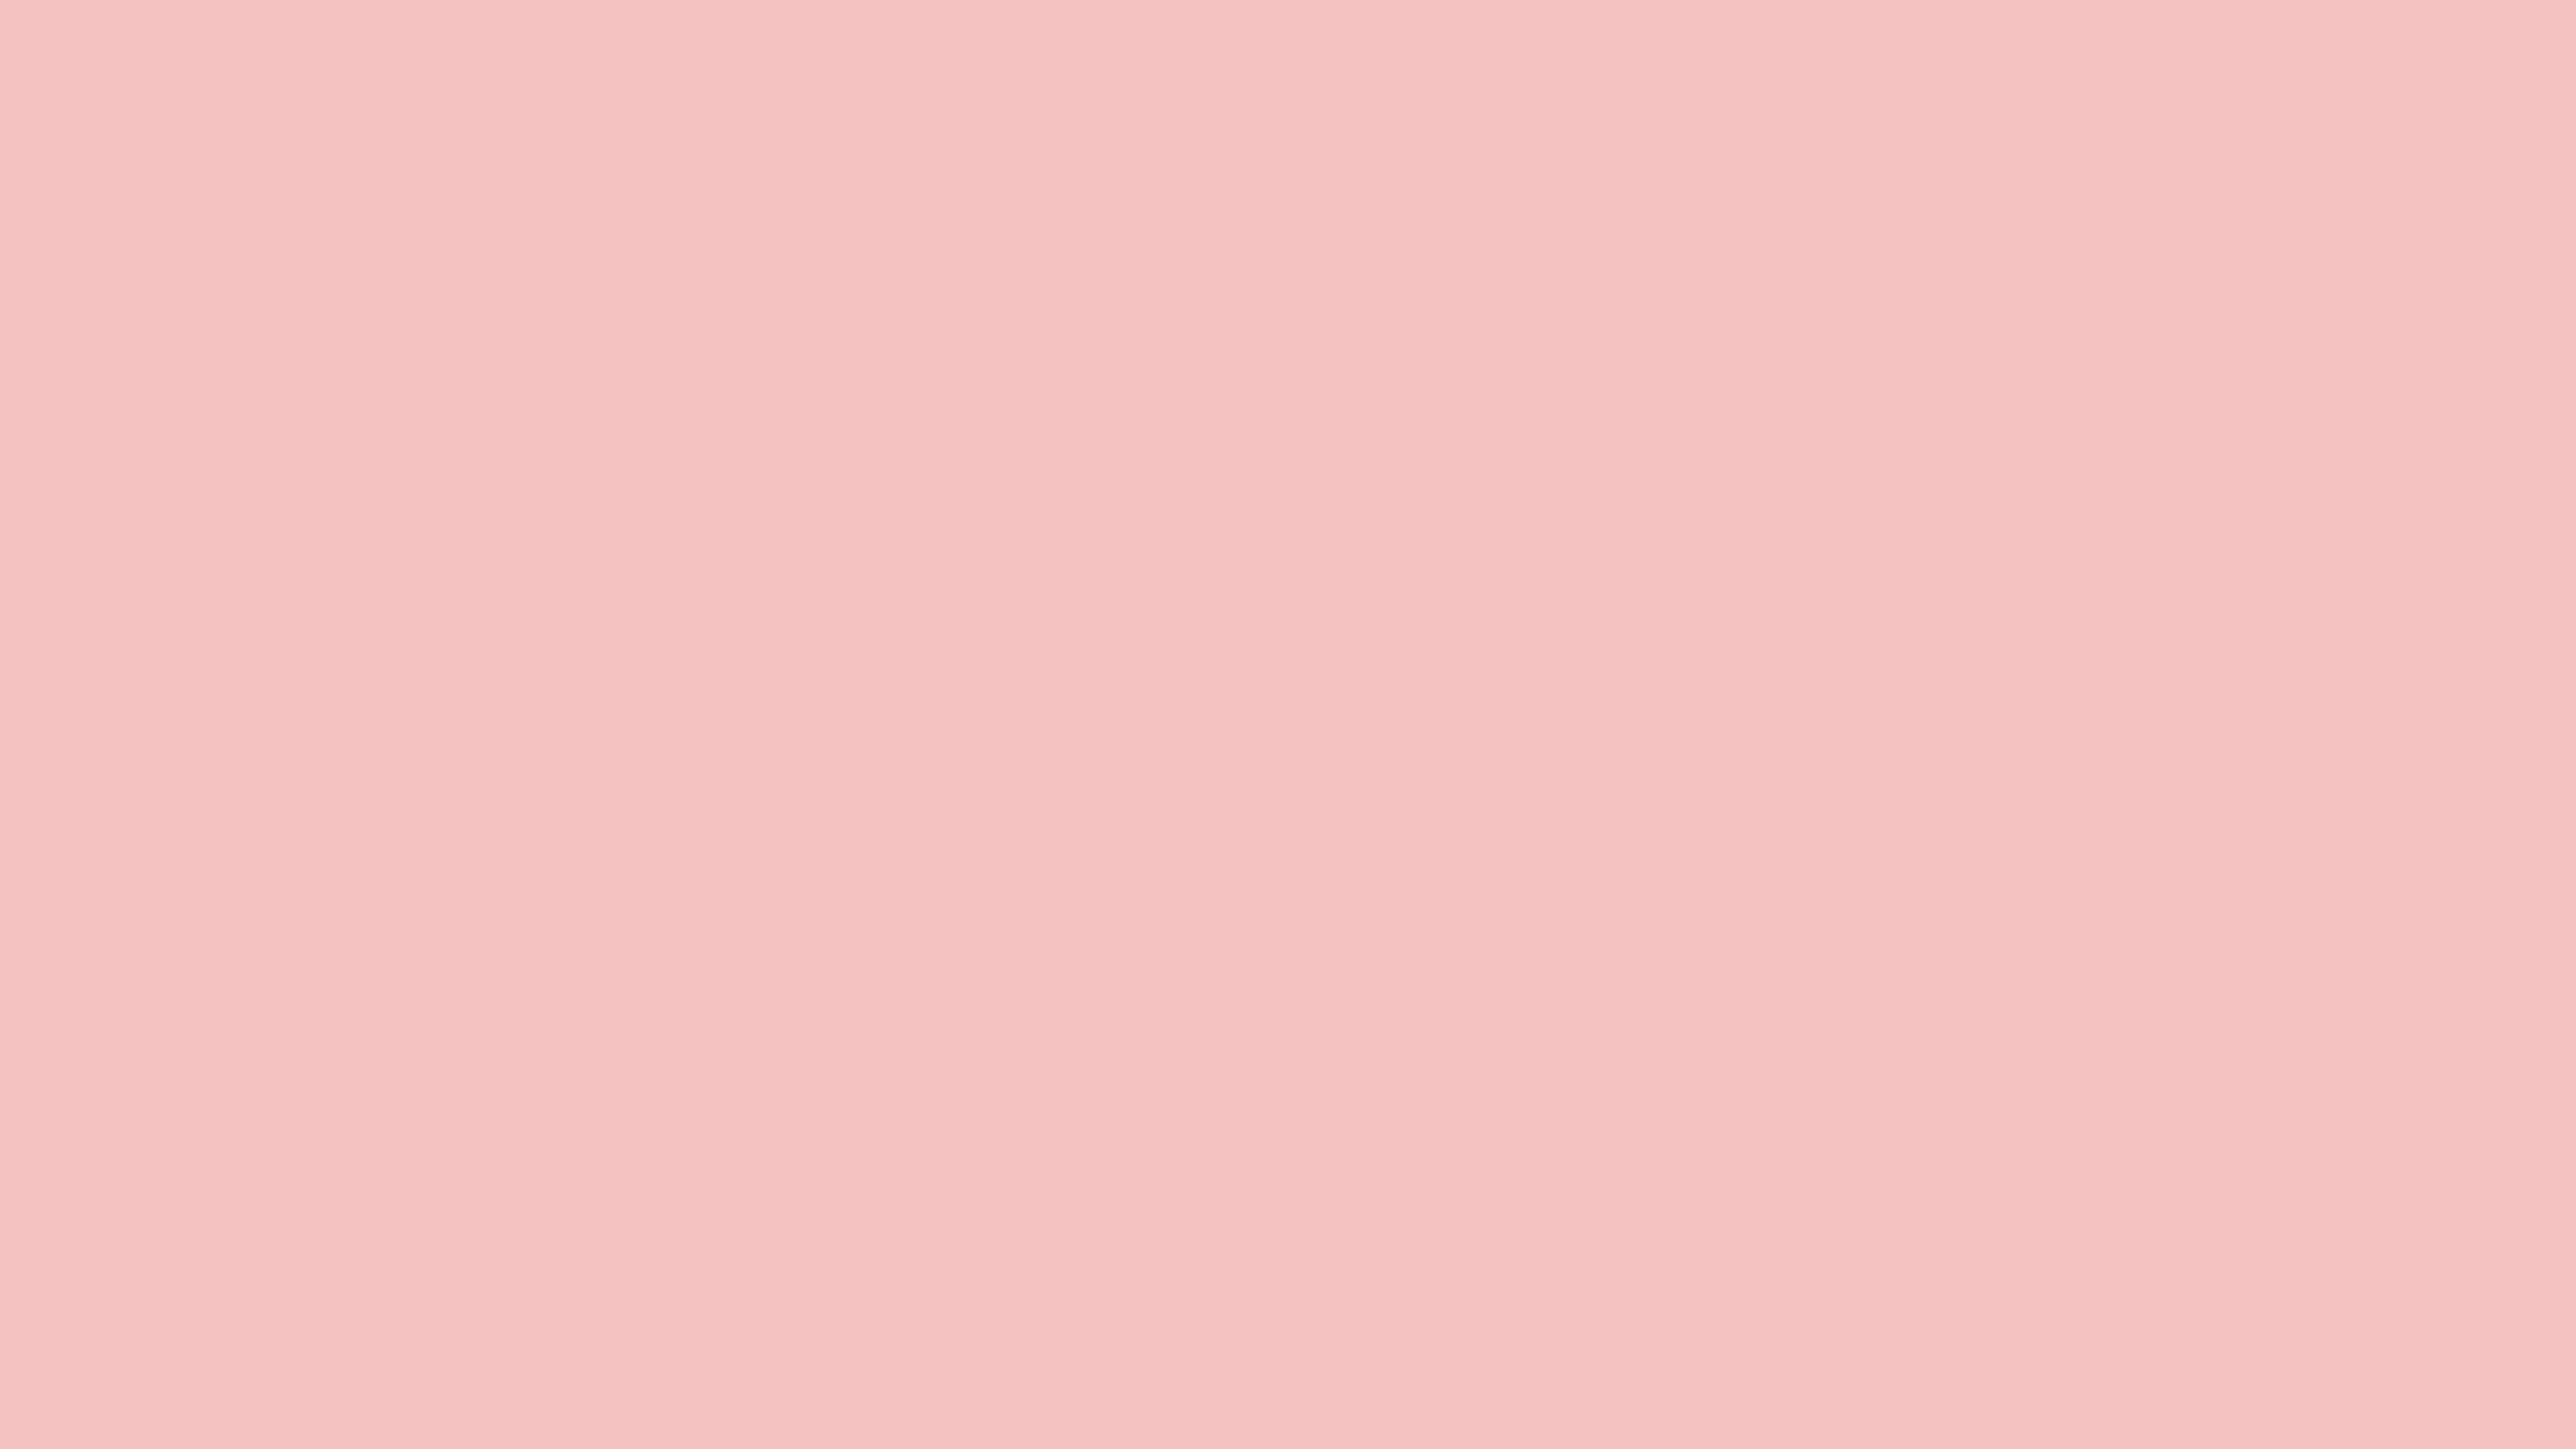 7680x4320 Baby Pink Solid Color Background